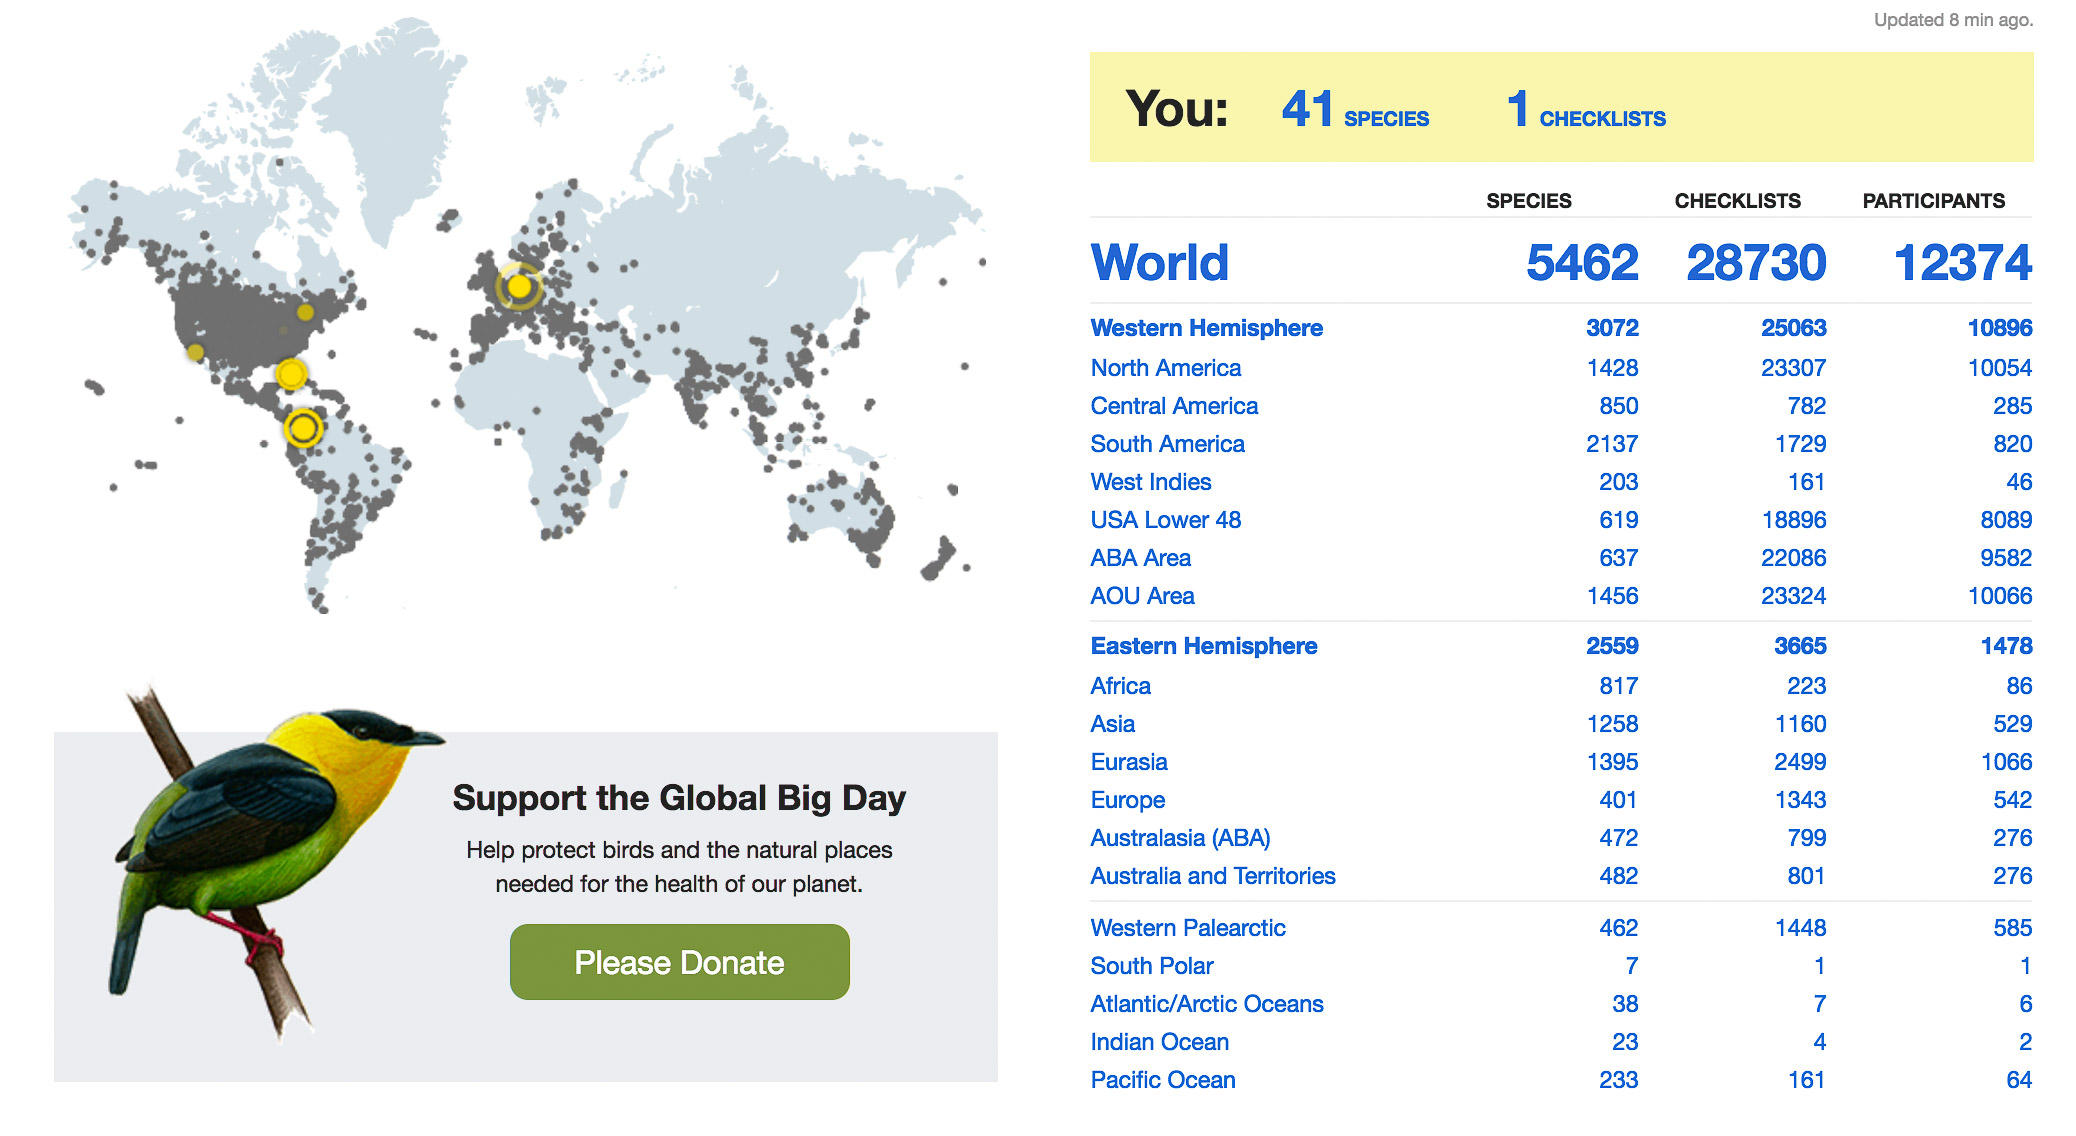 Thousands of birders submitted bird sighting data to eBird during its Global Big Day in May.